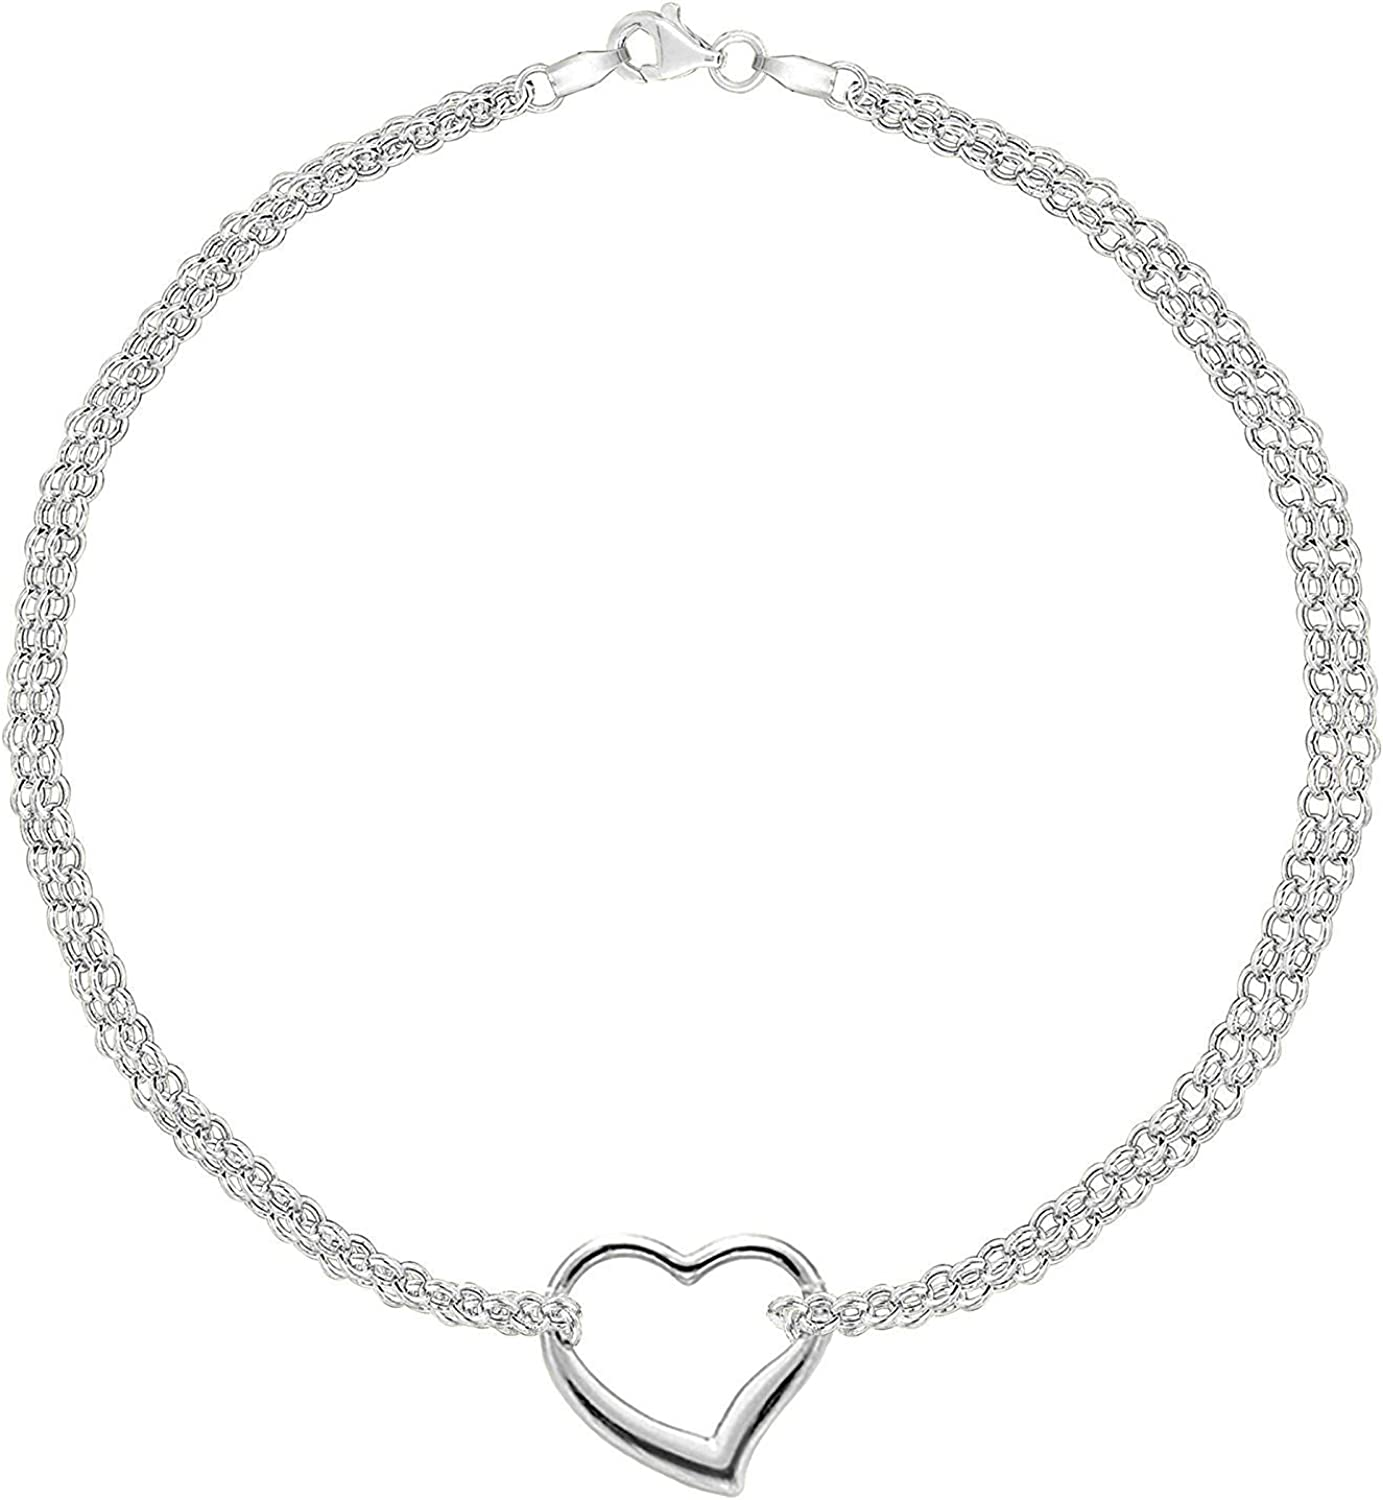 Genuine 14k White Gold Rope with Heart Anklet 10 inches